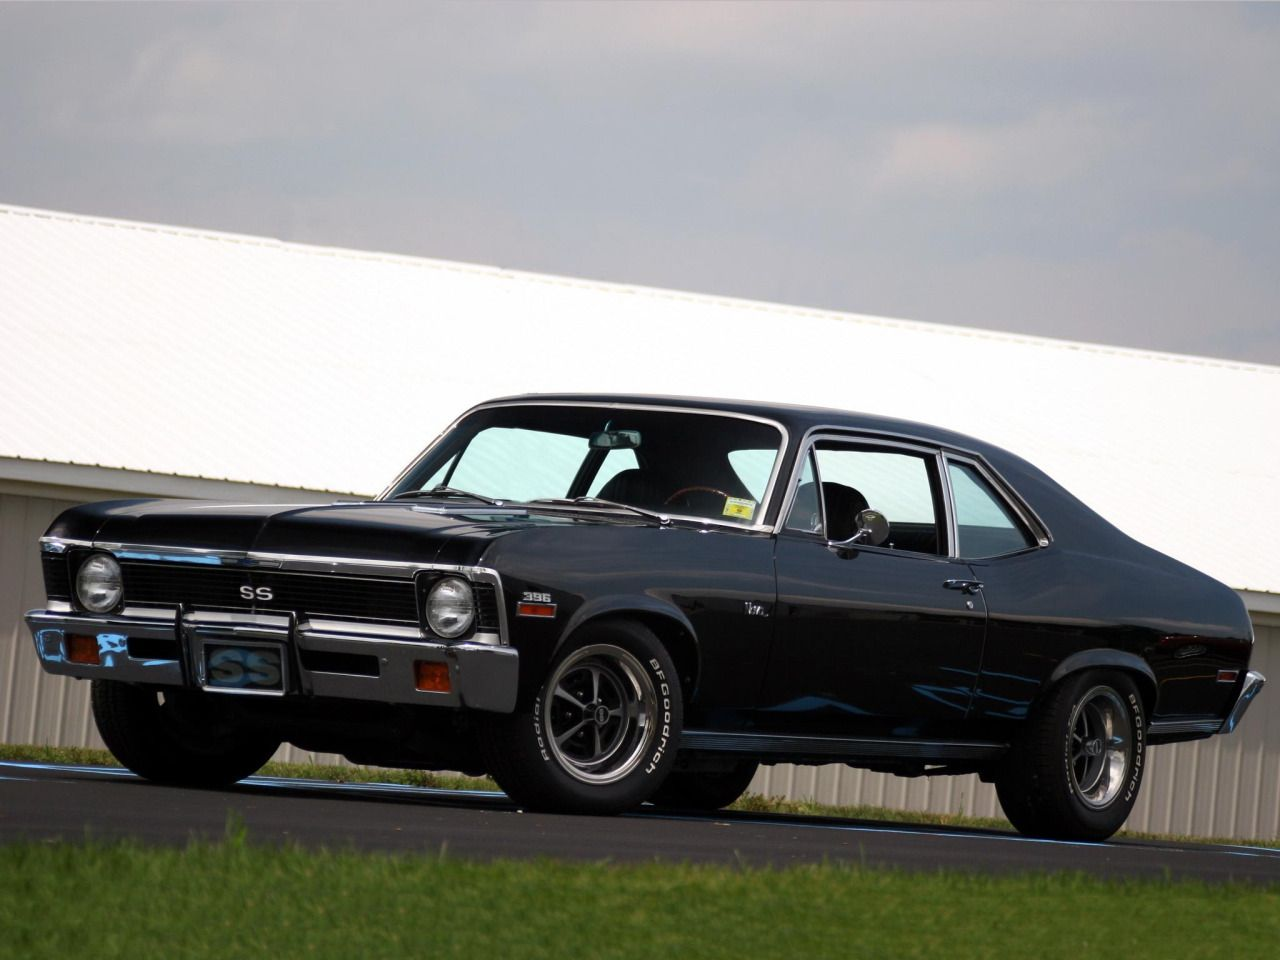 Best Chevy Nova S Images On Pinterest Chevy Nova Dream Cars